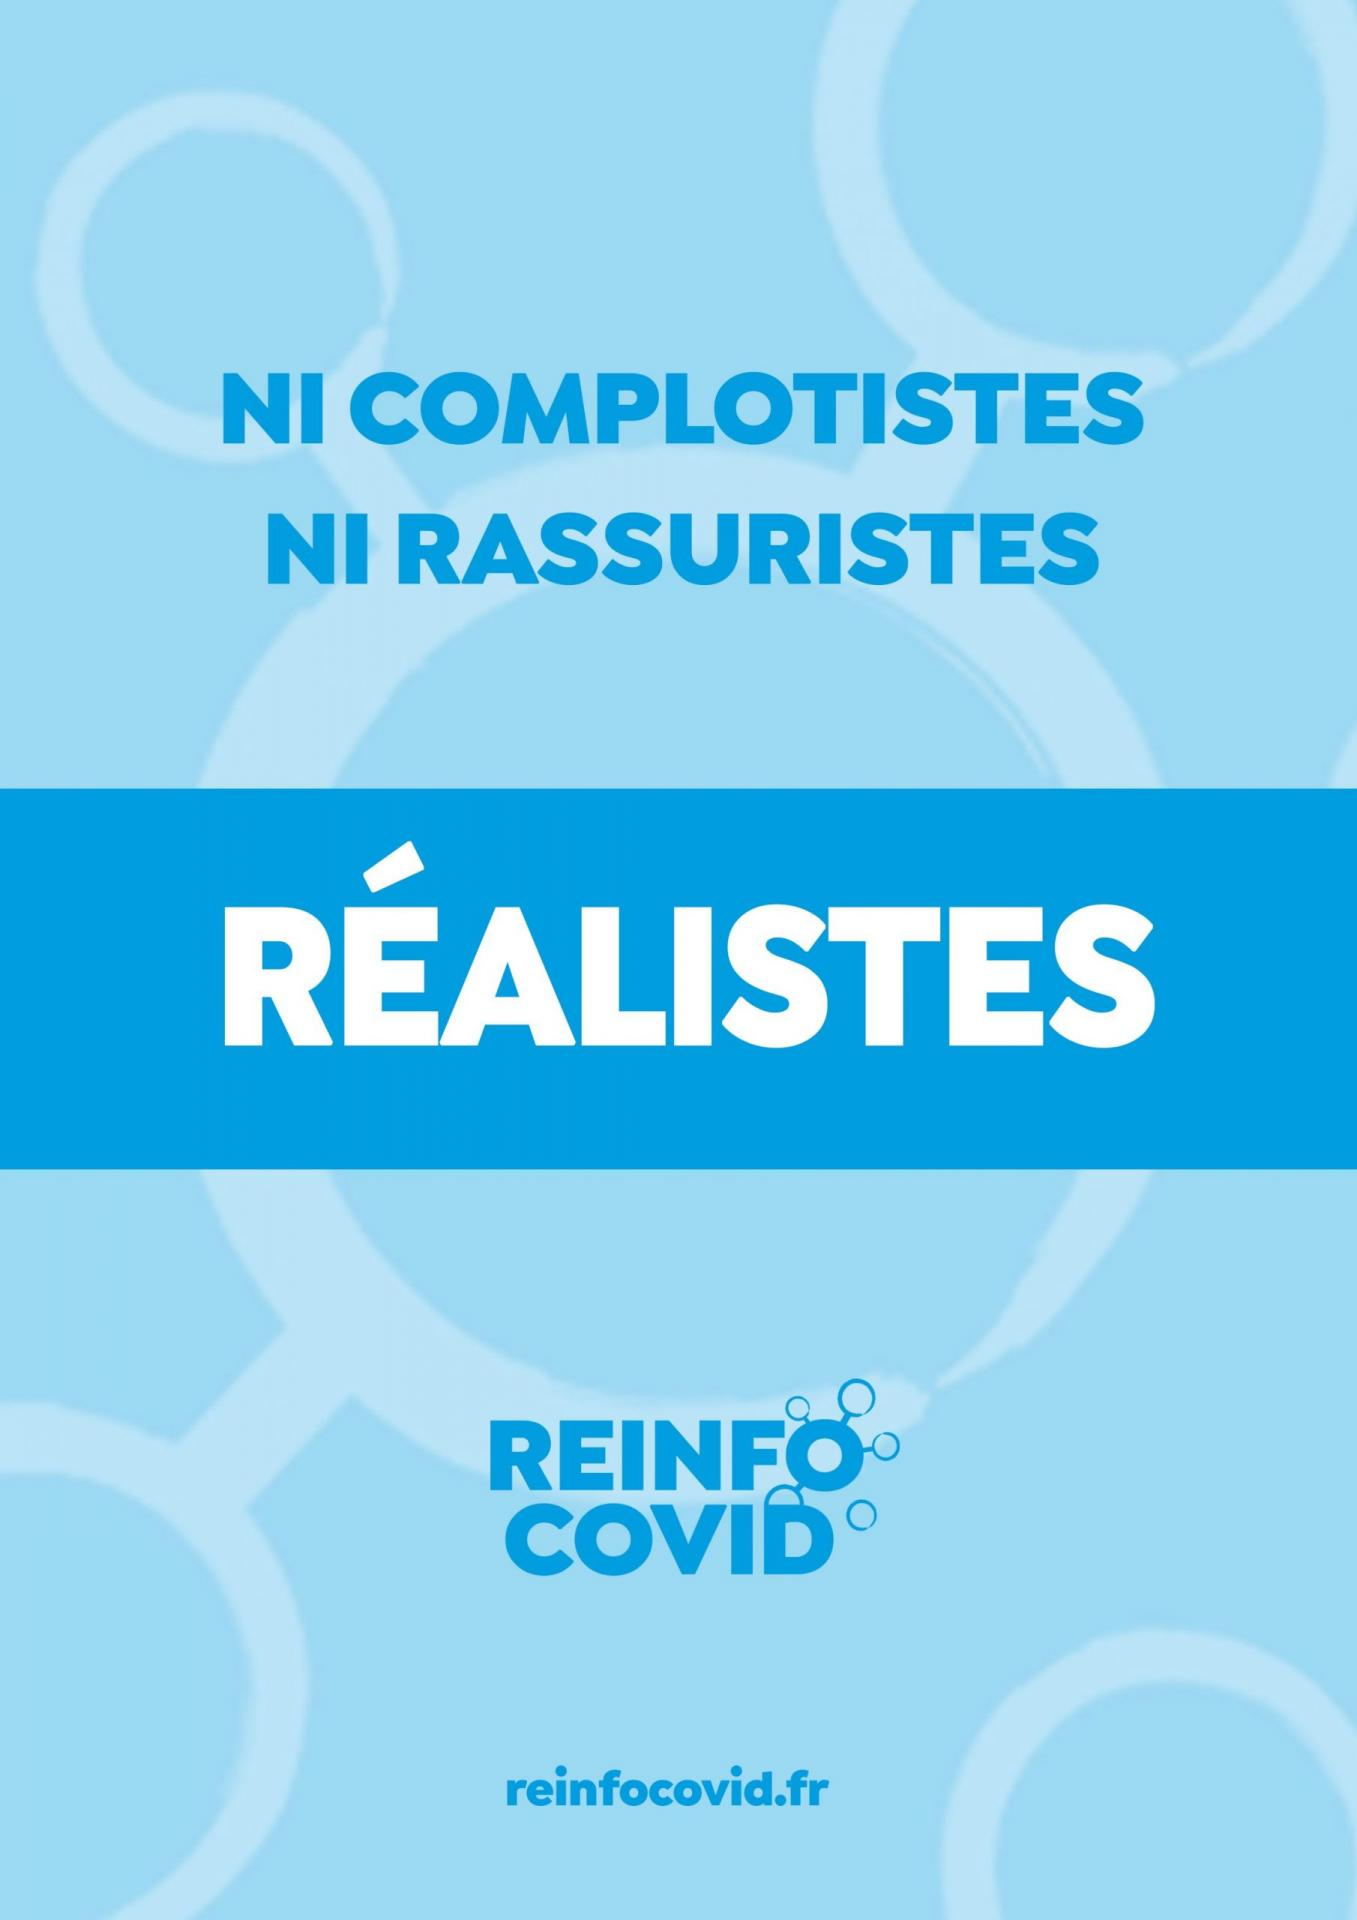 Realistes recto reinfo covid scaled